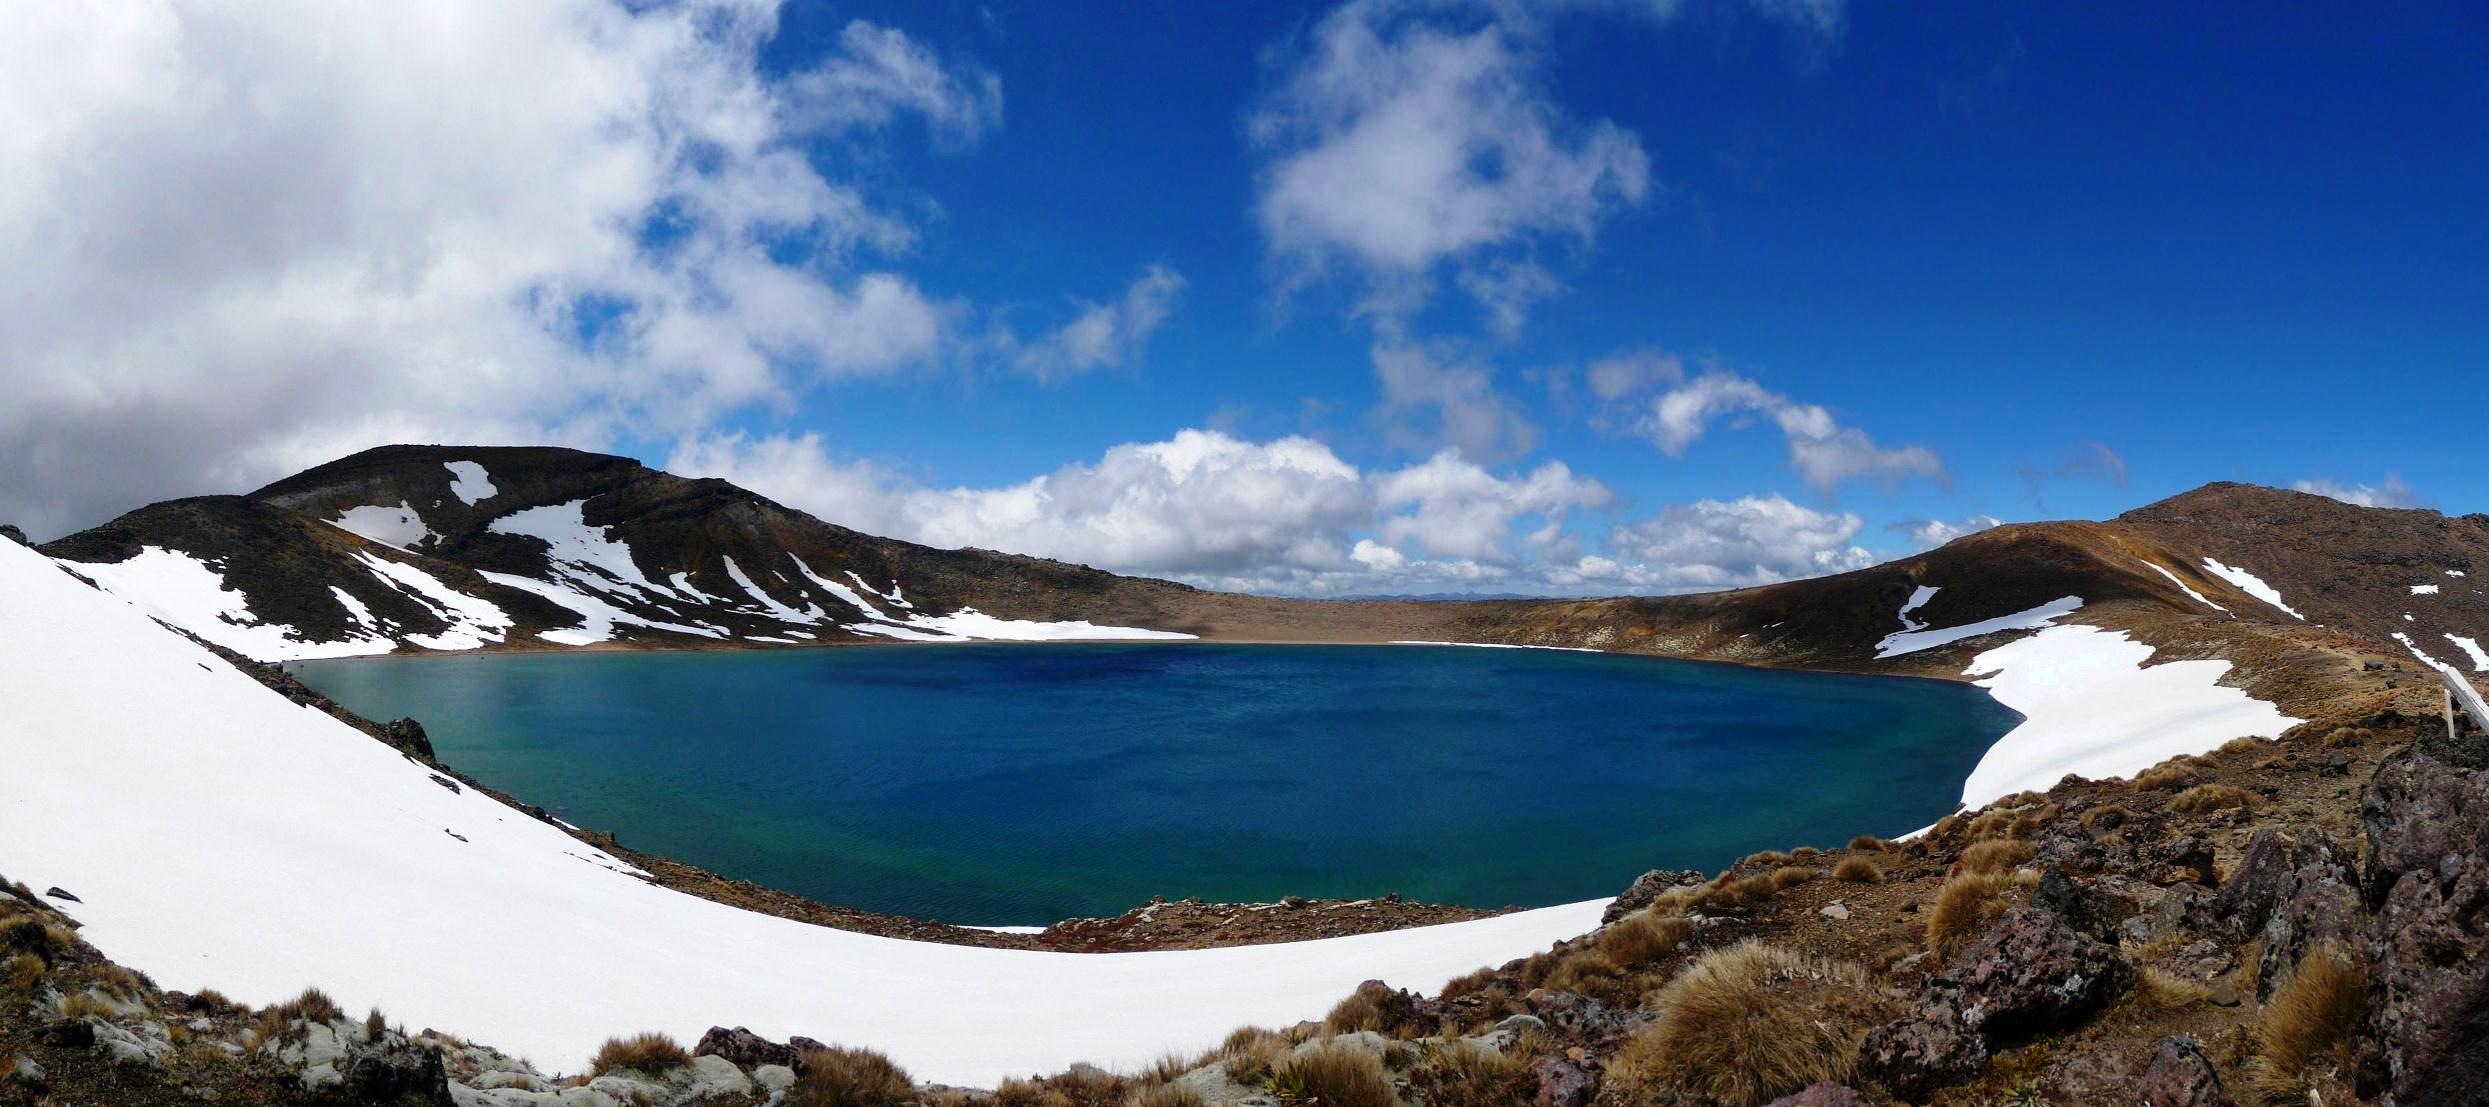 The Tongariro Alpine Crossing | The Missing Year